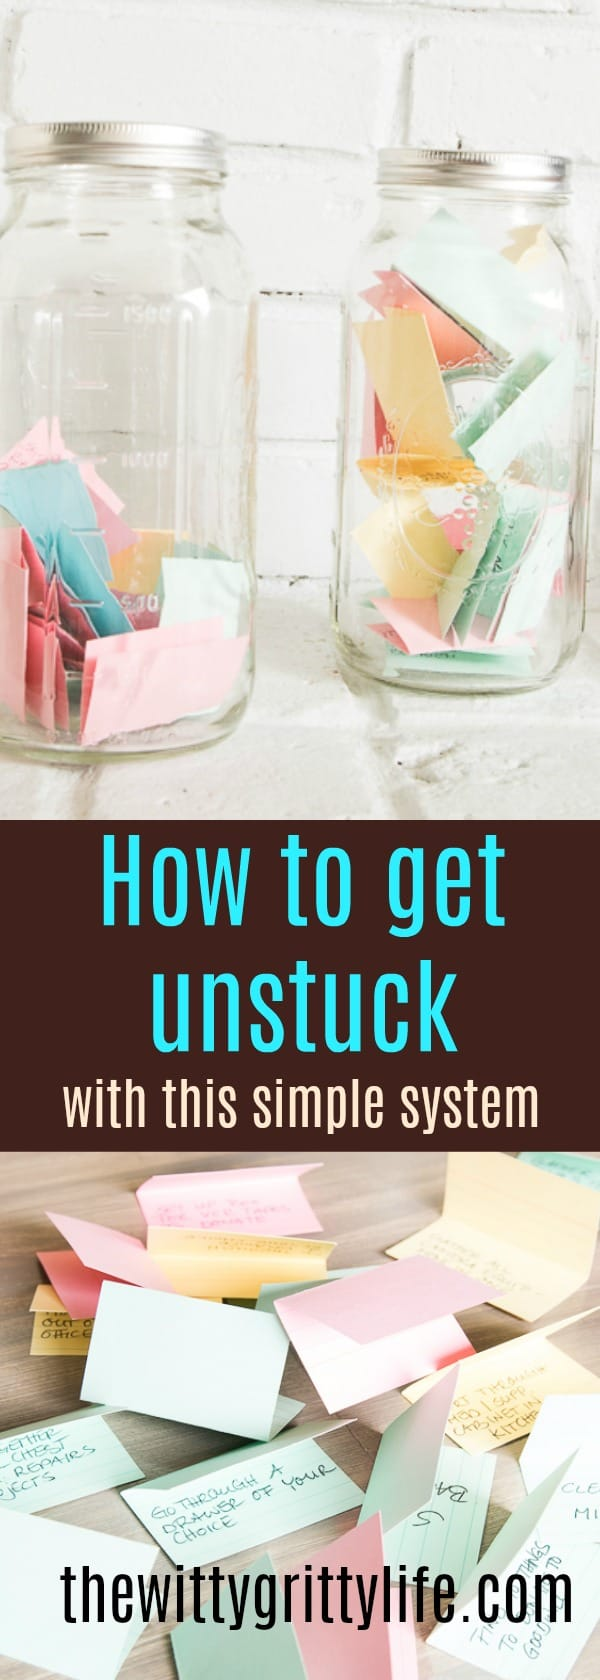 Sometimes big problems call for simple solutions. I came up with this simple system a while back to get me back on track with my decluttering journey.